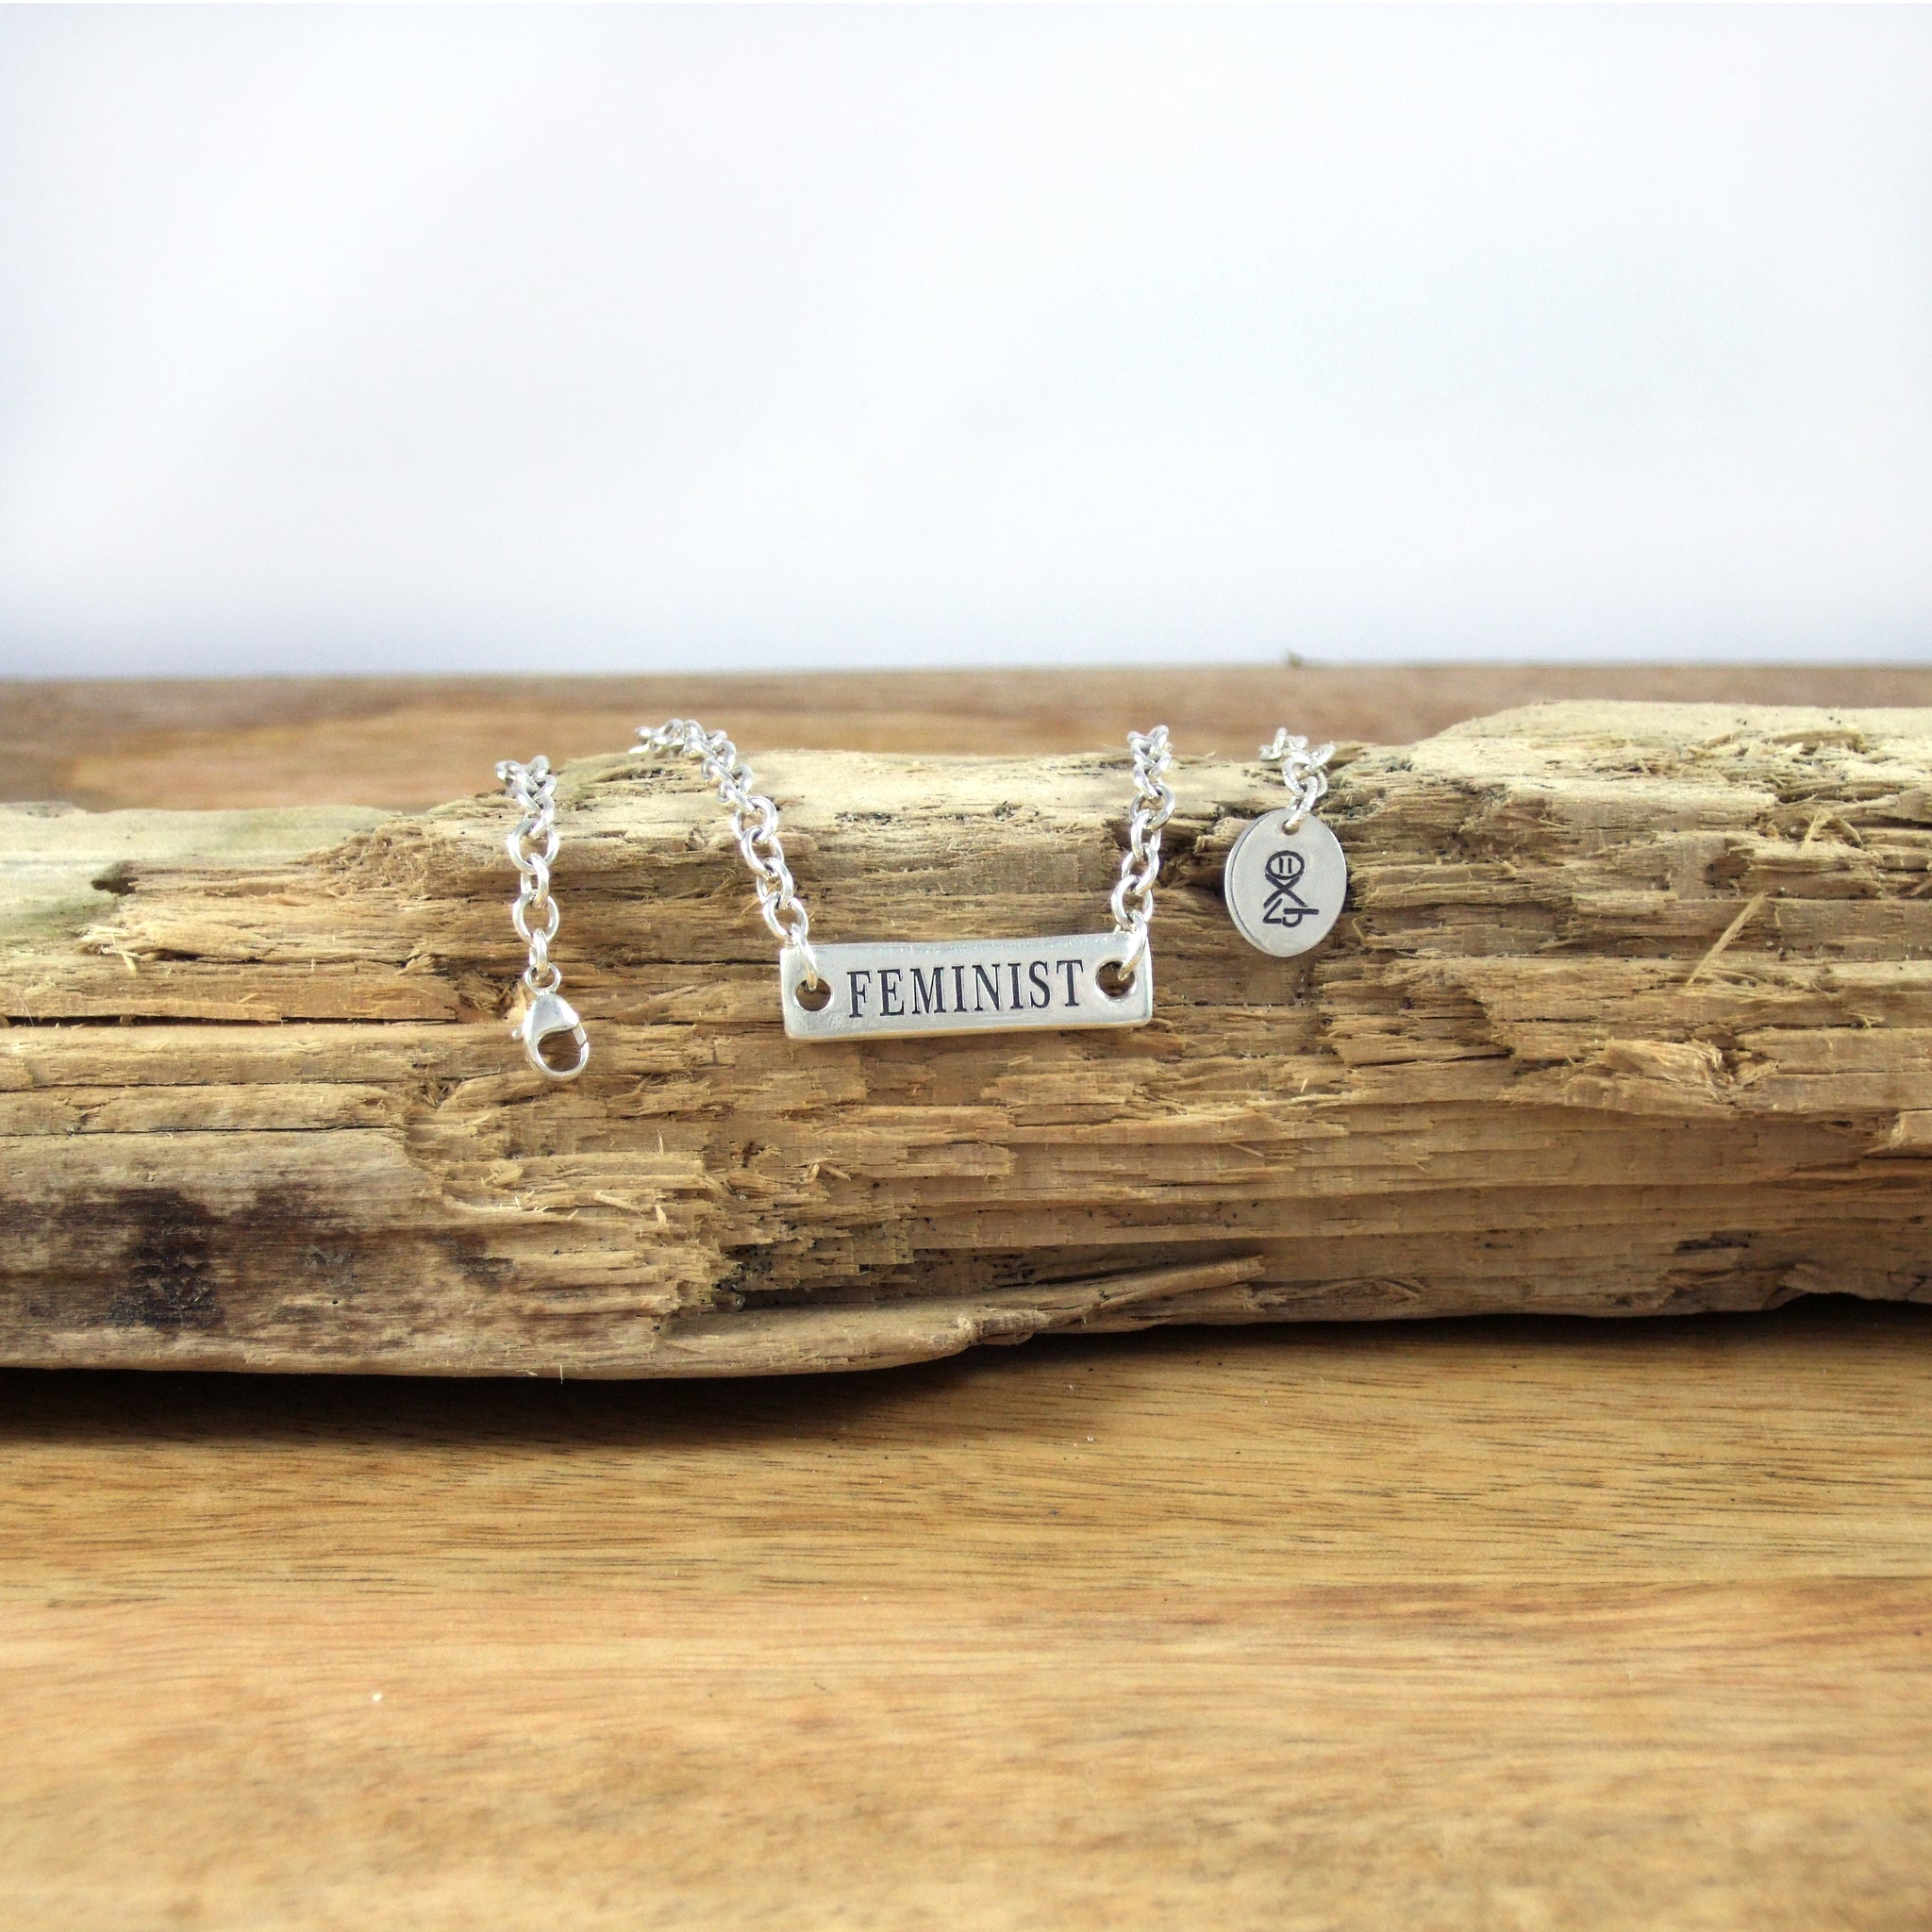 Feminist Flip Over Ankle Bracelet in Recycled Sterling Silver